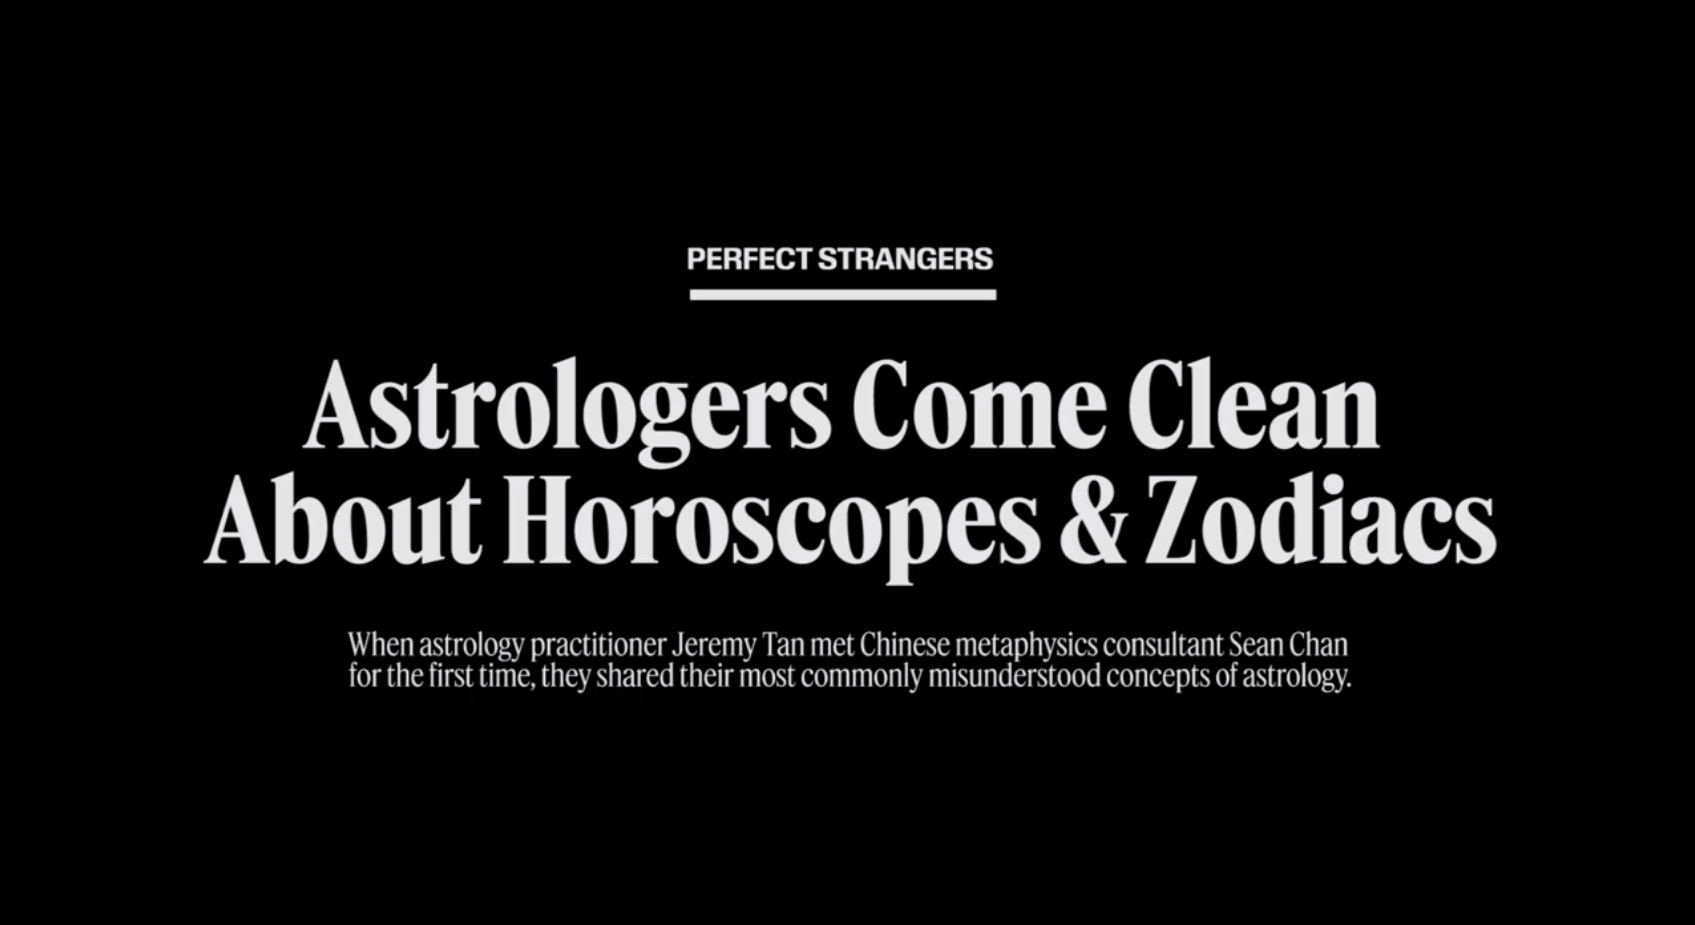 (Media Feature) Perfect Strangers | Two Astrologers Come Clean On Horoscopes & Zodiacs